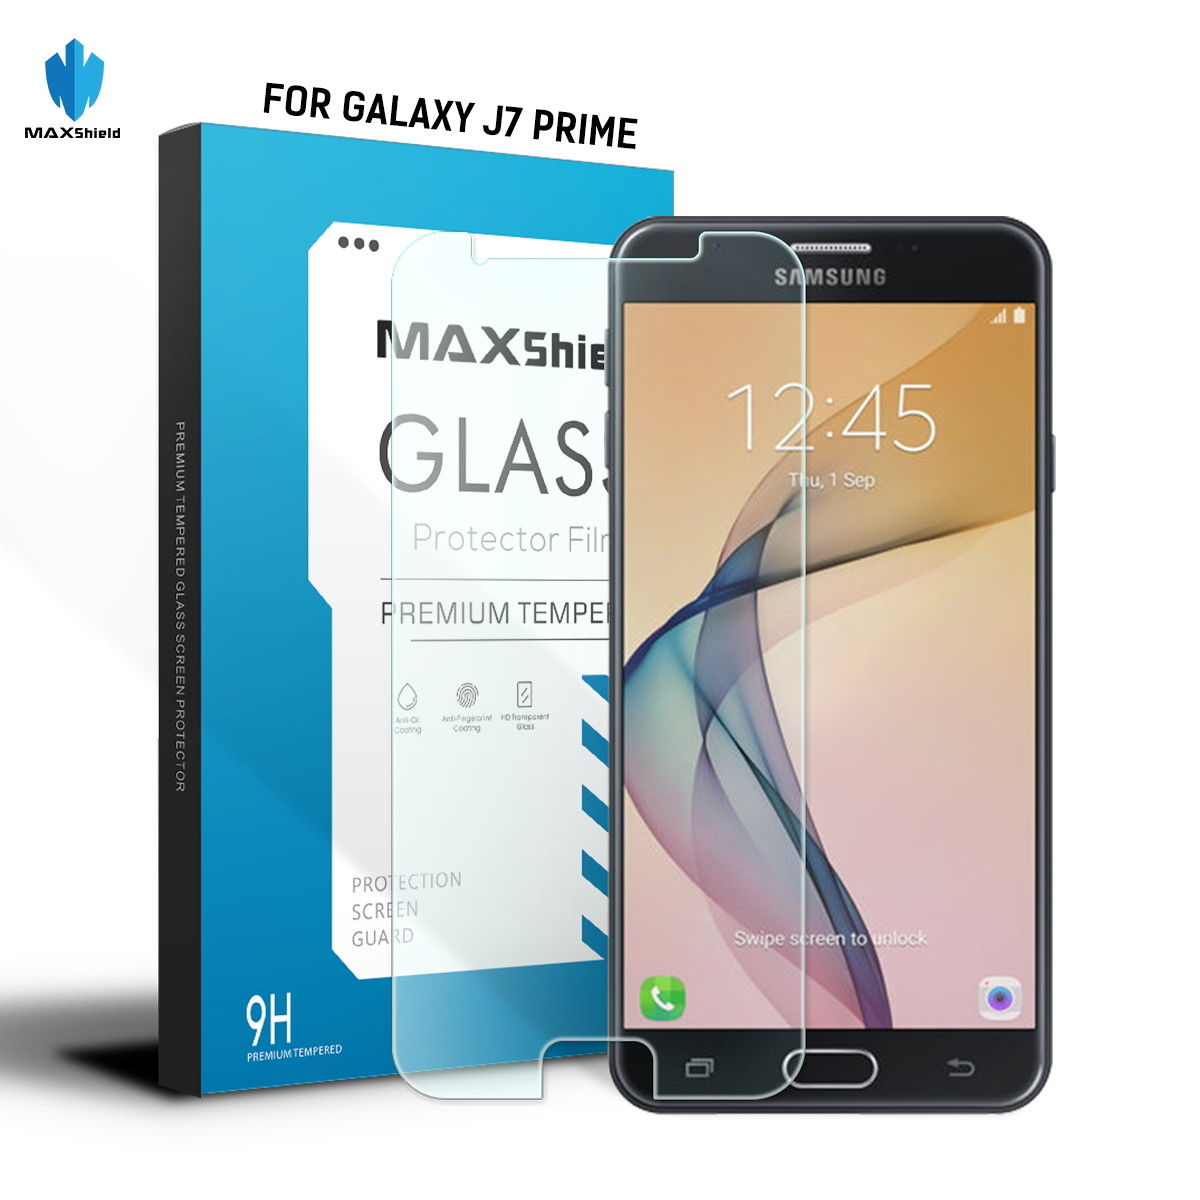 MAXSHIELD Tempered Glass Screen Protector For Samsung Galaxy J7 Prime